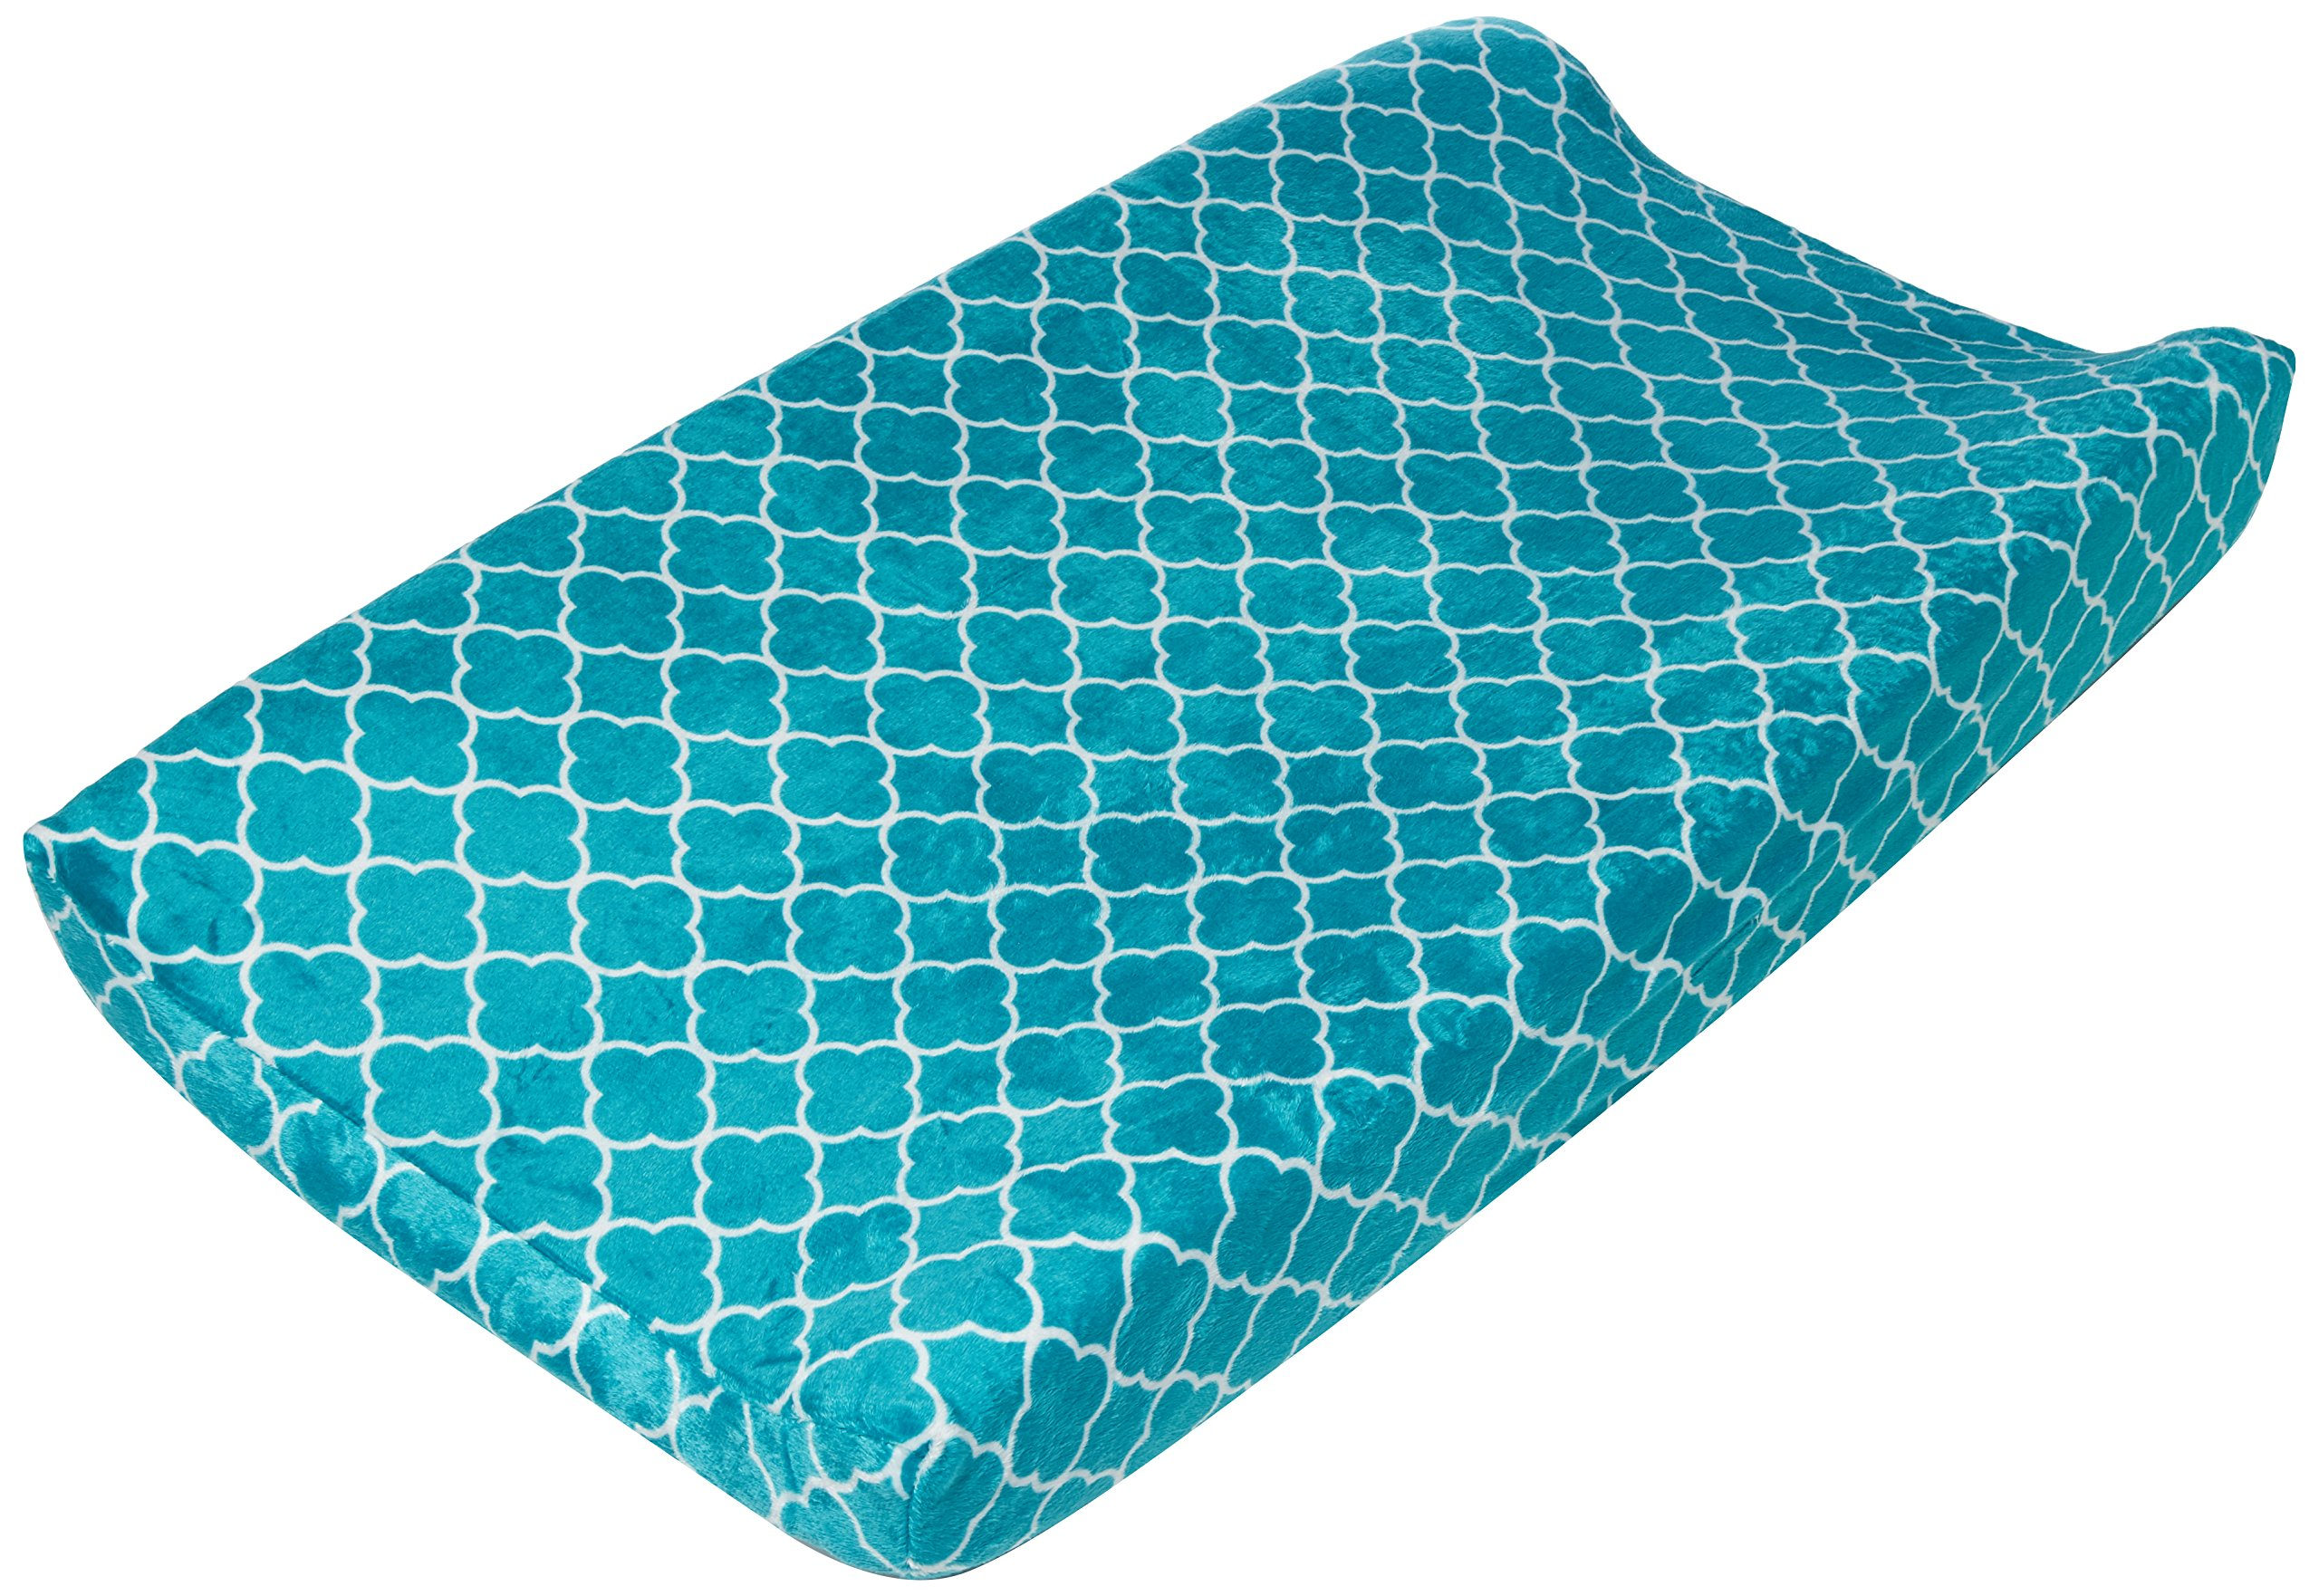 Summer Infant Ultra Plush Changing Pad Cover, Teal Medallion